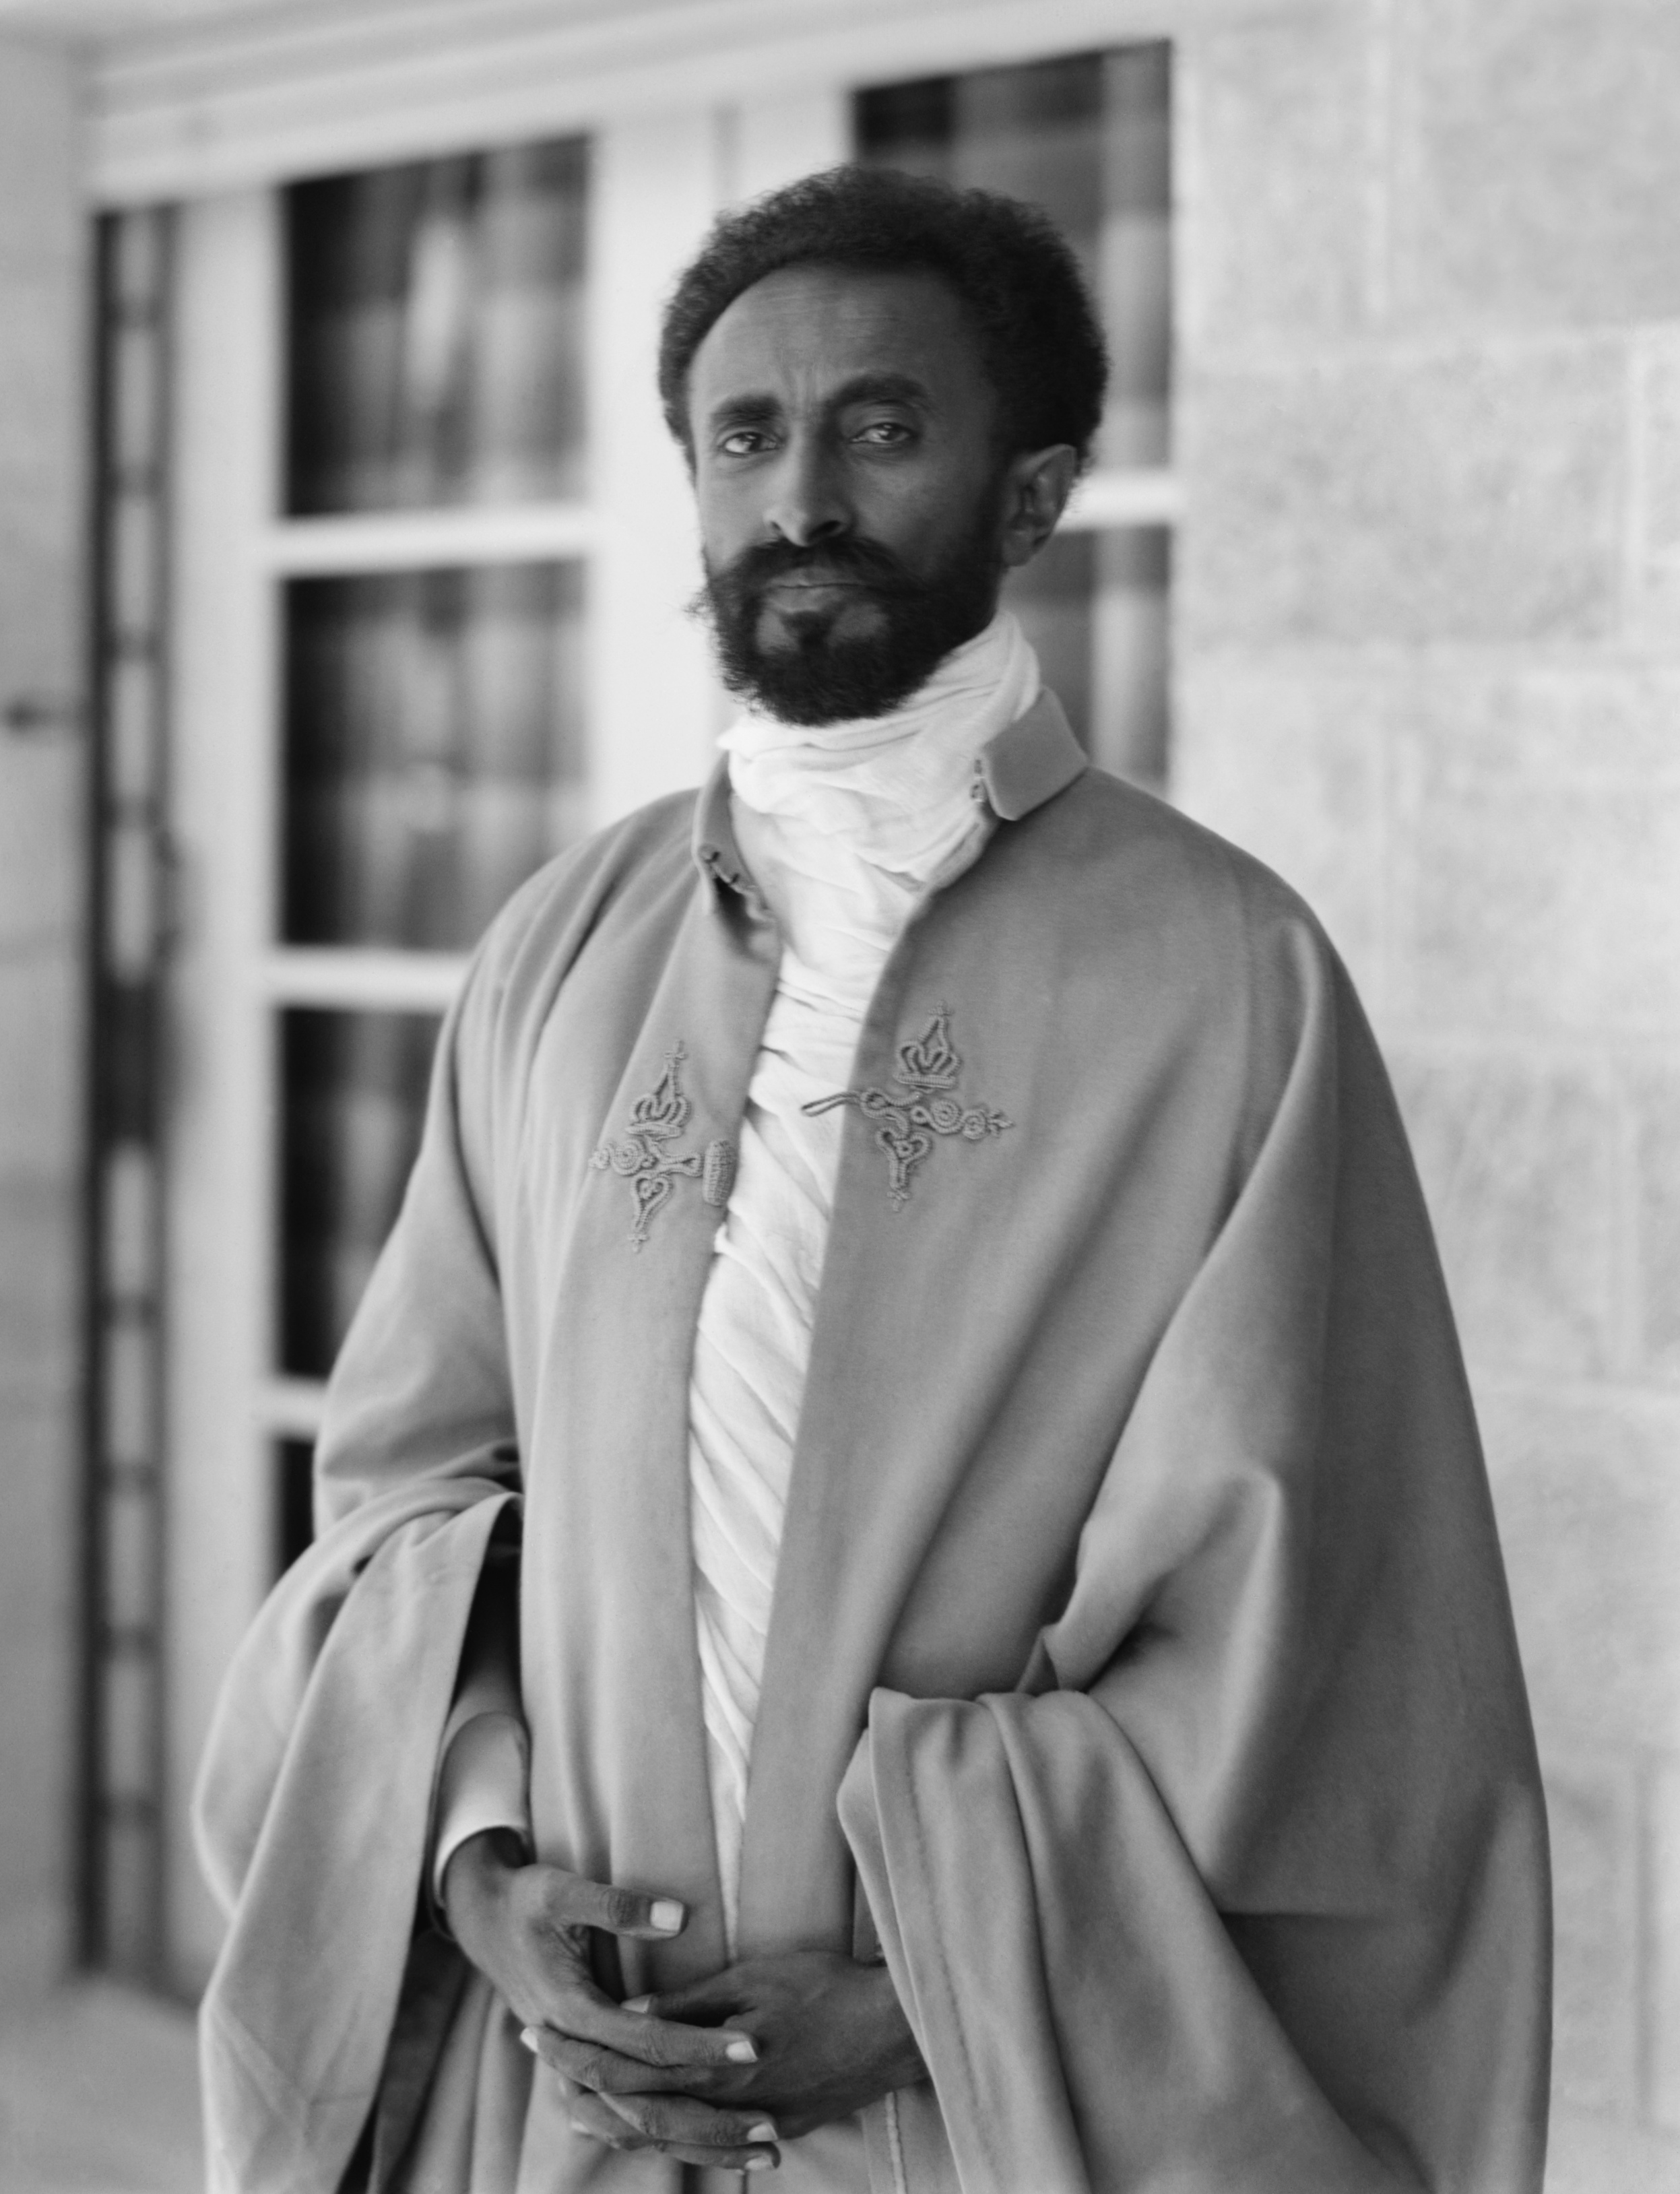 The symbol of haile selassie the rise of the natural mystic the symbol of haile selassie the rise of the natural mystic biocorpaavc Image collections